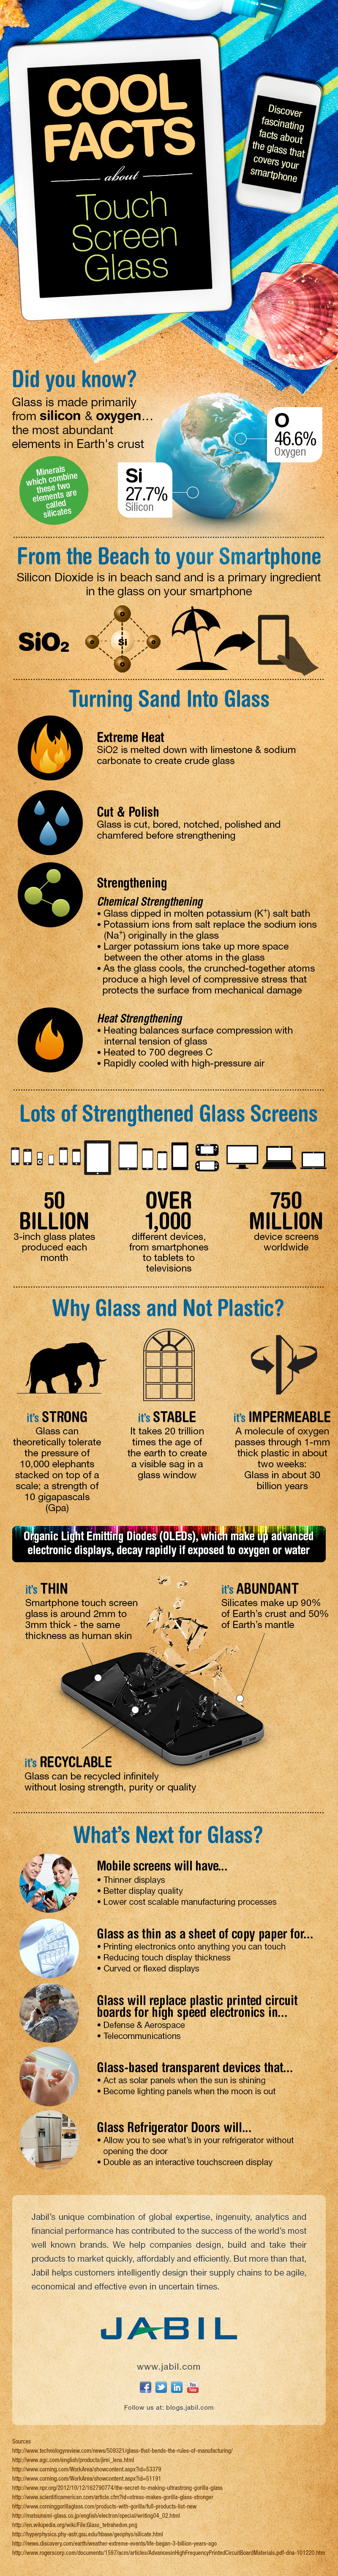 Interesting Facts About Glass with Mobile Technology